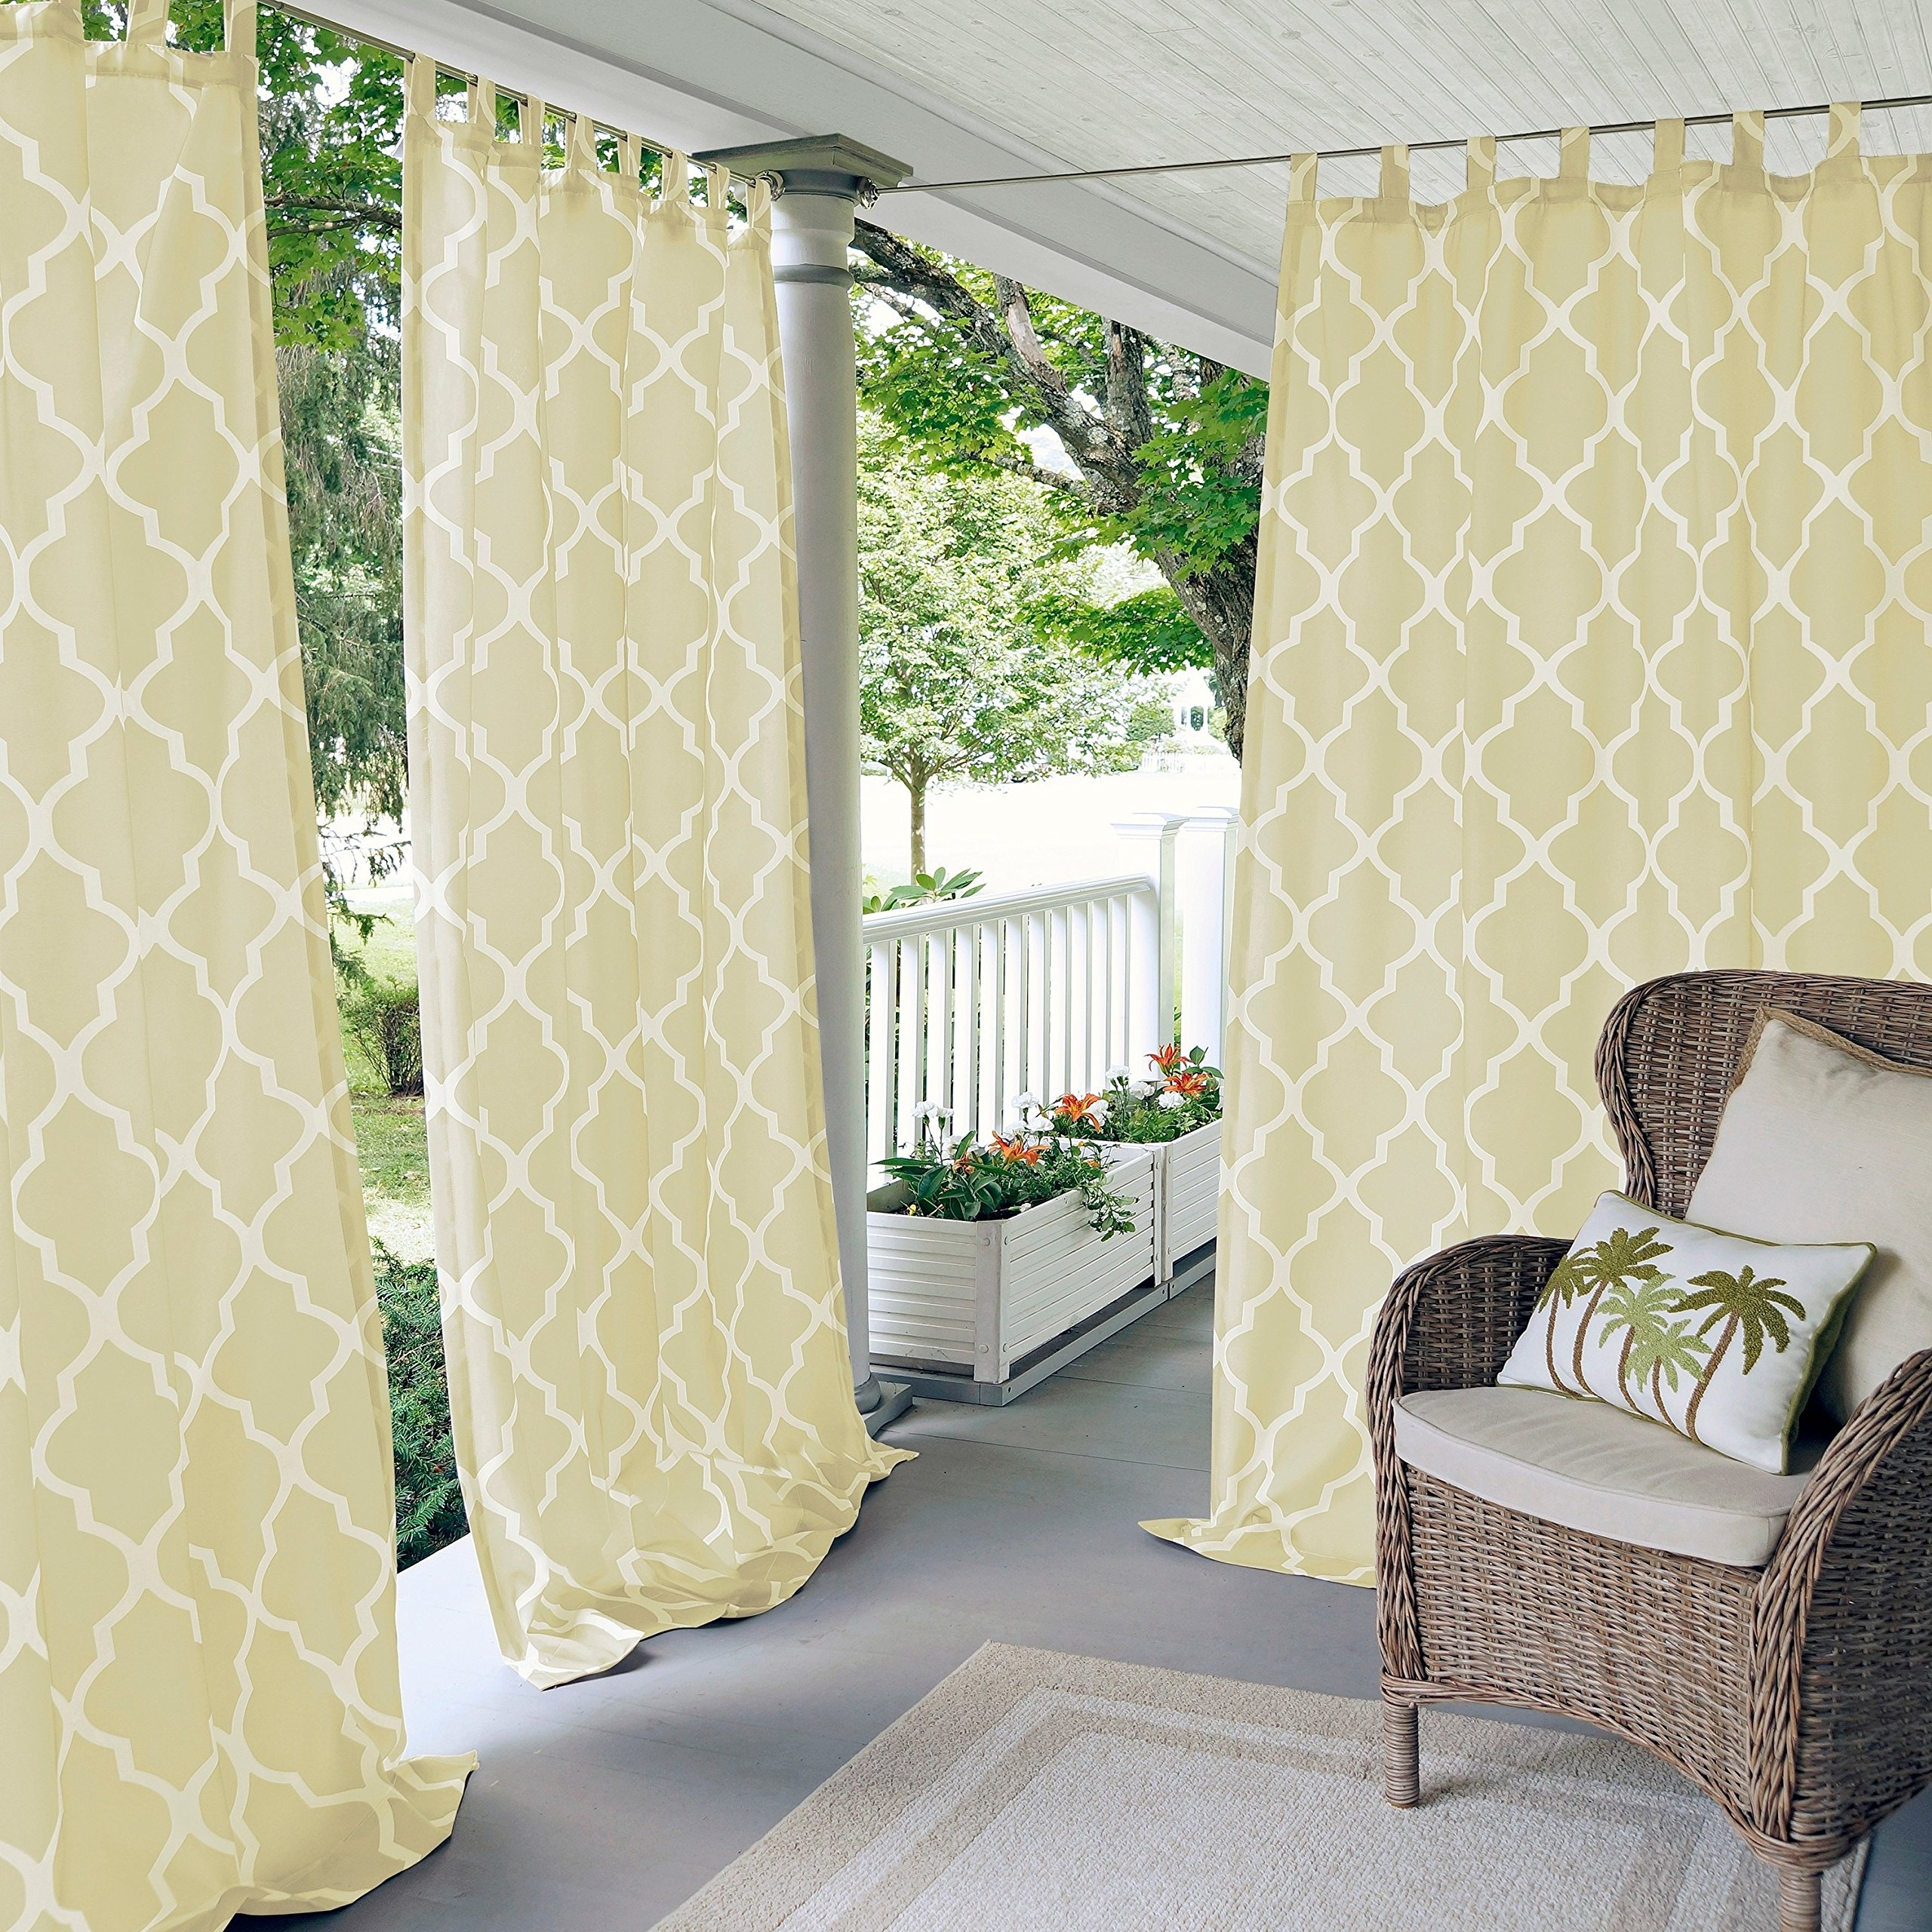 N&T 1 Piece Ivory Trellis Gazebo Curtain Panel 95 Inch, Cream Moroccan Print Outdoor Curtain Water Resistant for Patio Porch, Light Filtering Indoor/Outdoor Curtain Pergola Sunroom Tab Top, Polyester